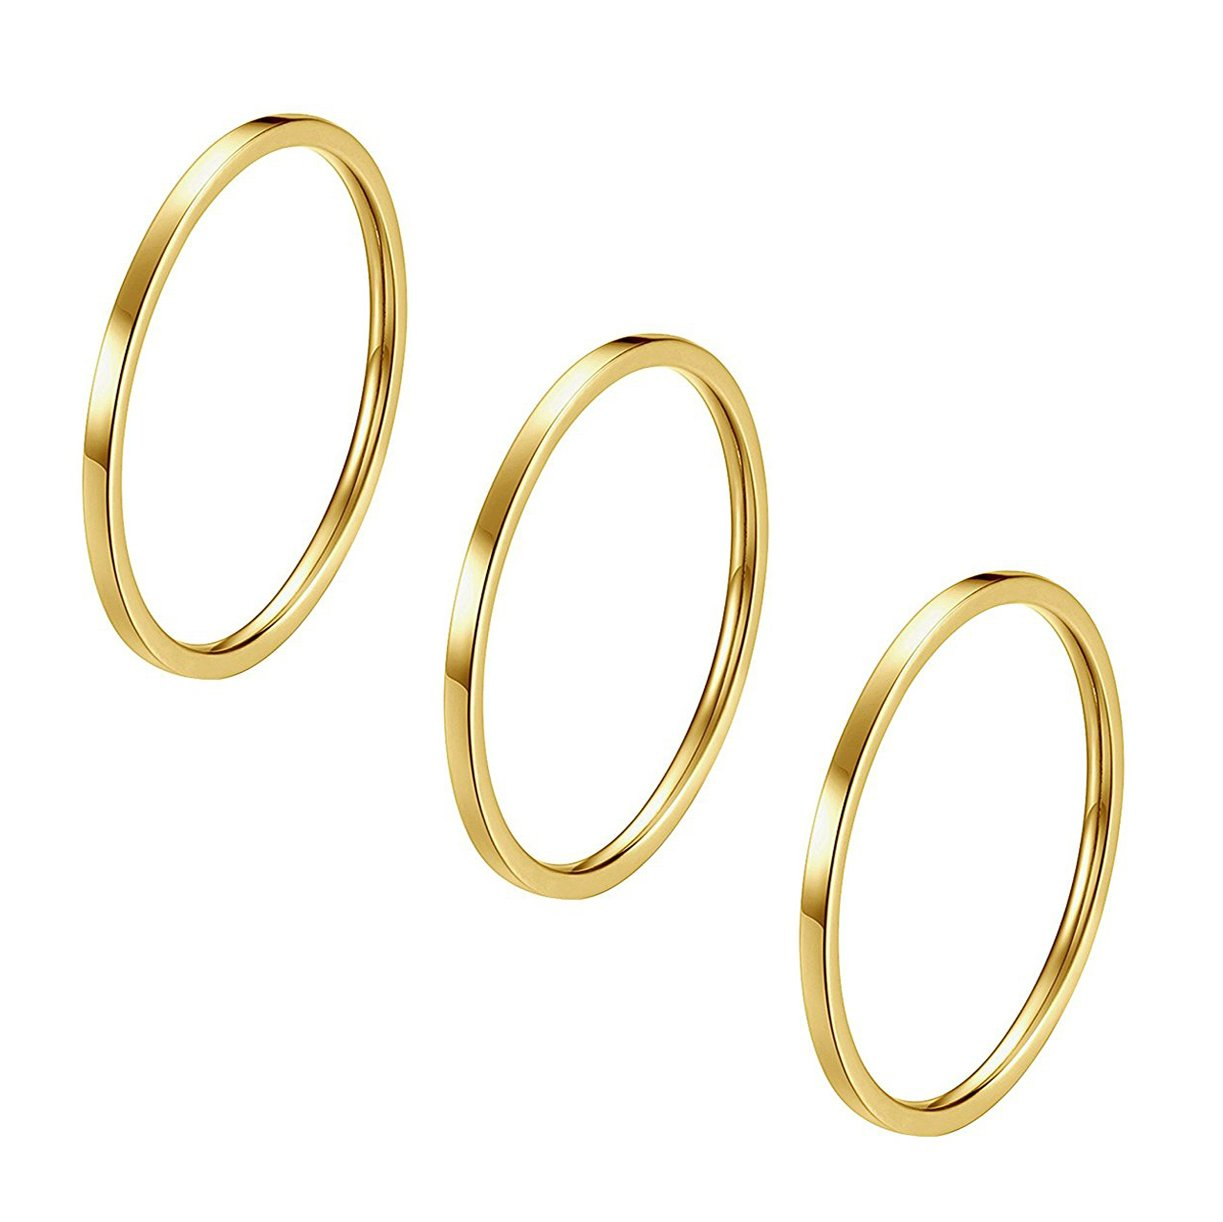 IFUAQZ 3pcs 1mm Stainless Steel Plain Band Knuckle Stacking Midi Rings for Women Girls Comfort Fit Gold Size 10